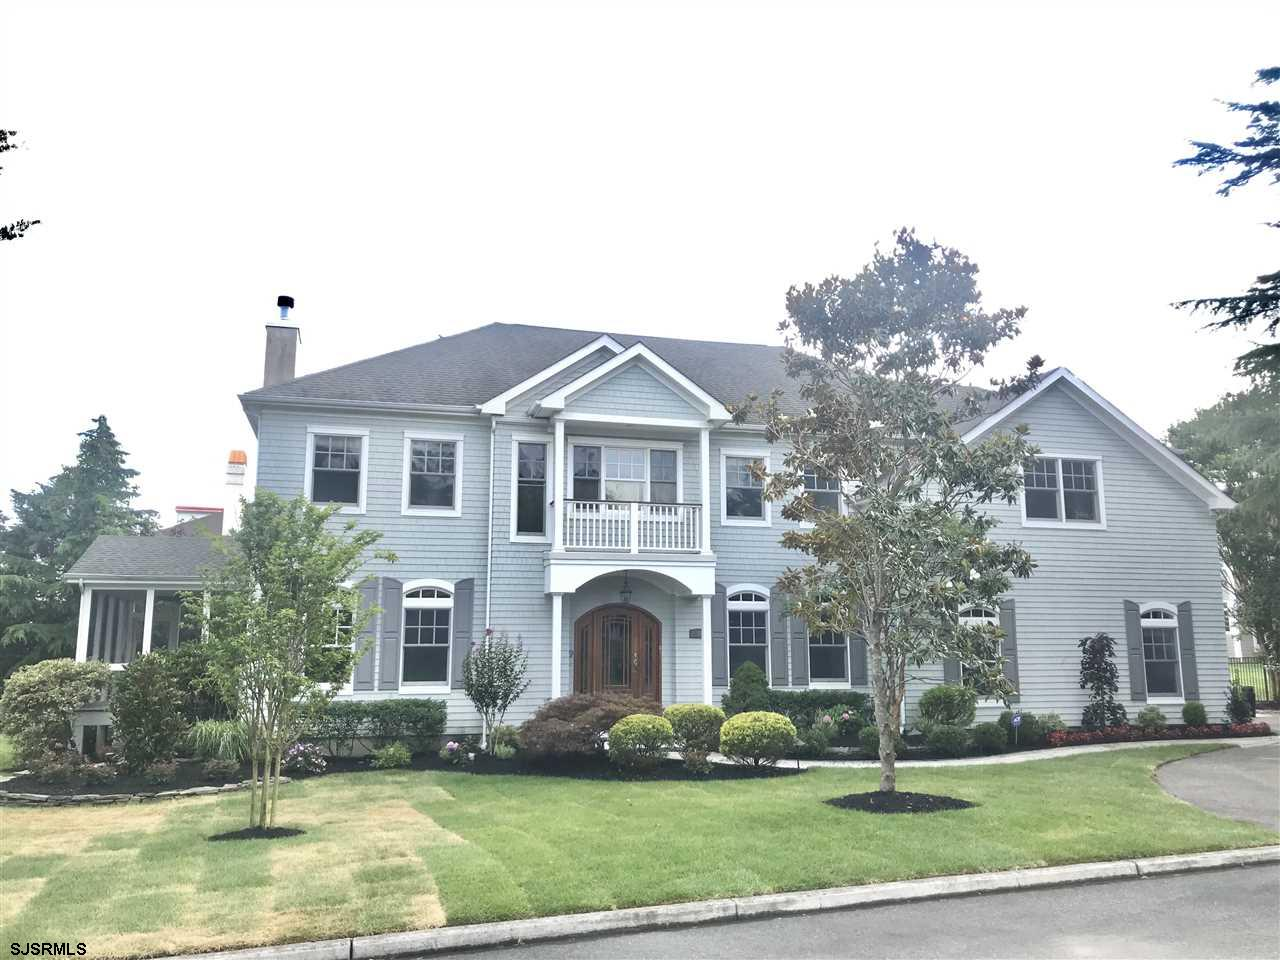 205 E Arlington Ave, Linwood, NJ, 08221